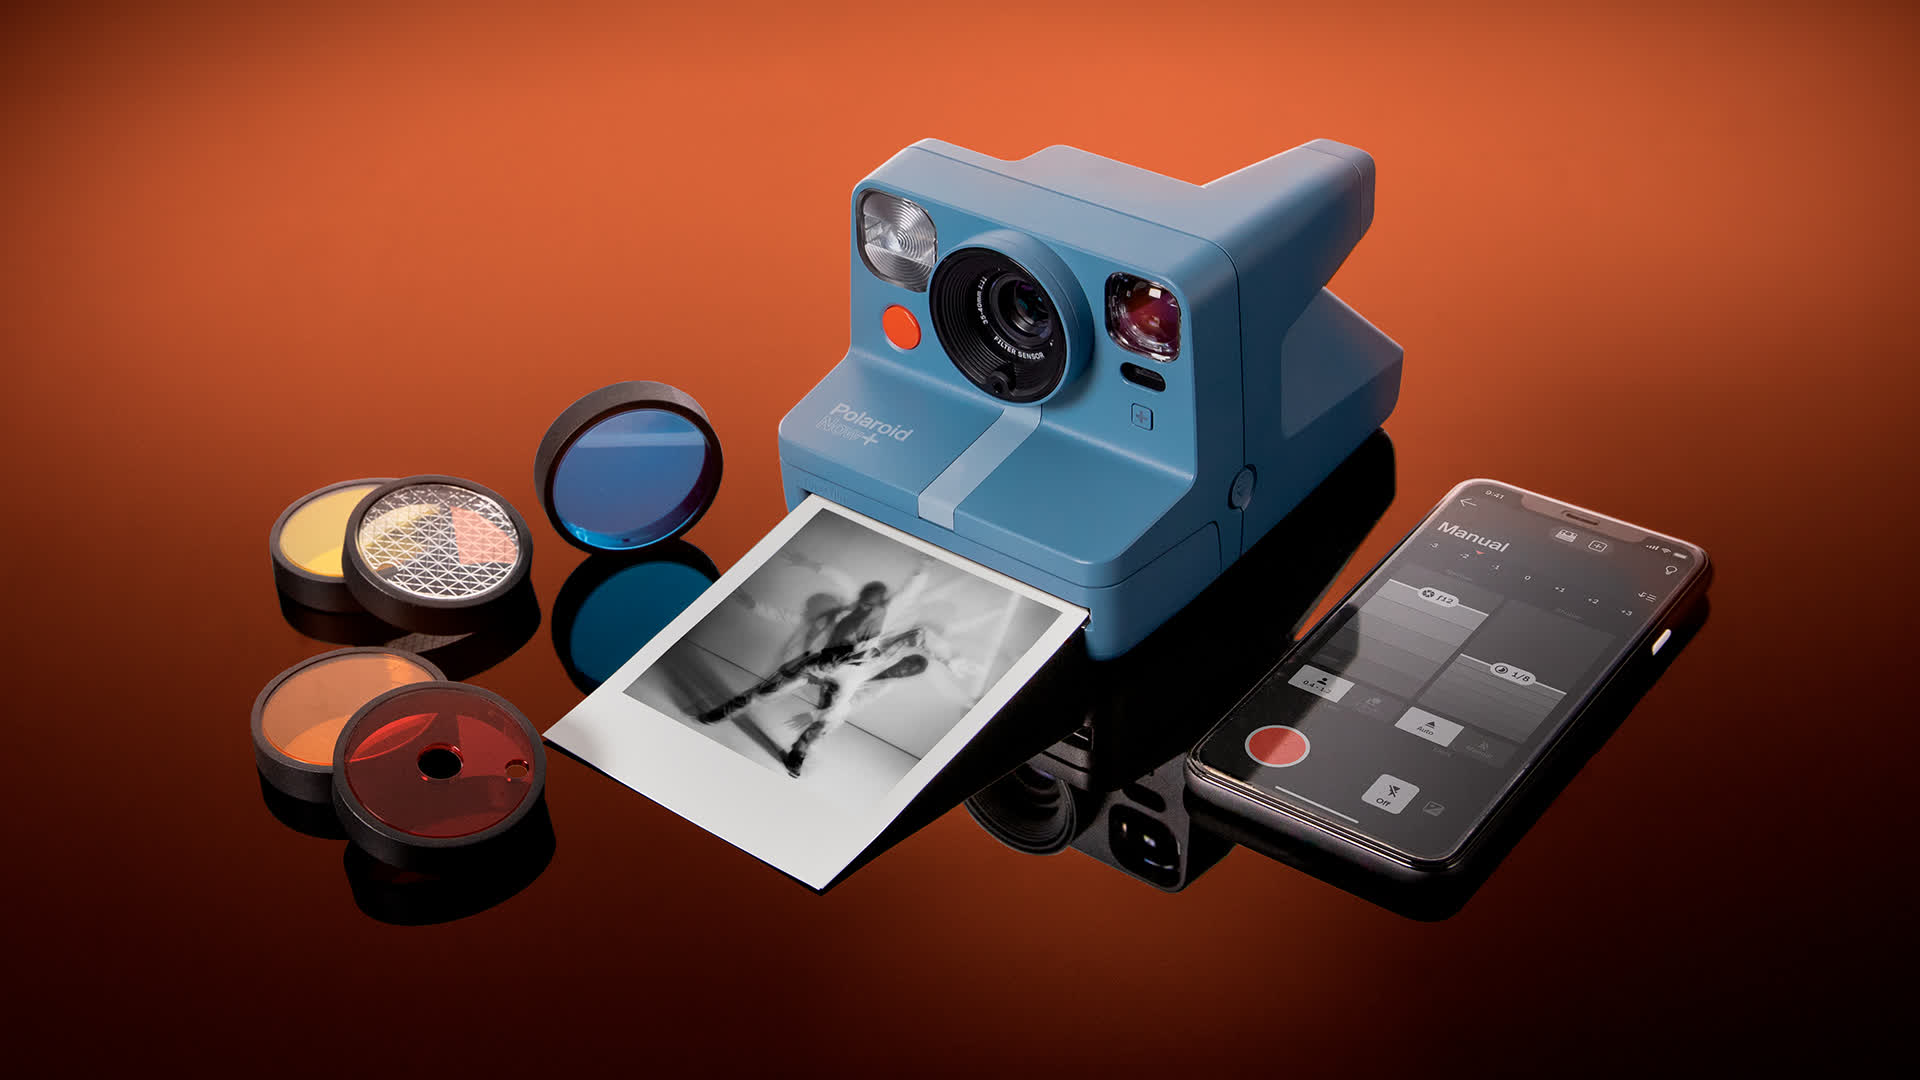 Polaroid's latest instant camera blends old school usability with modern connectivity